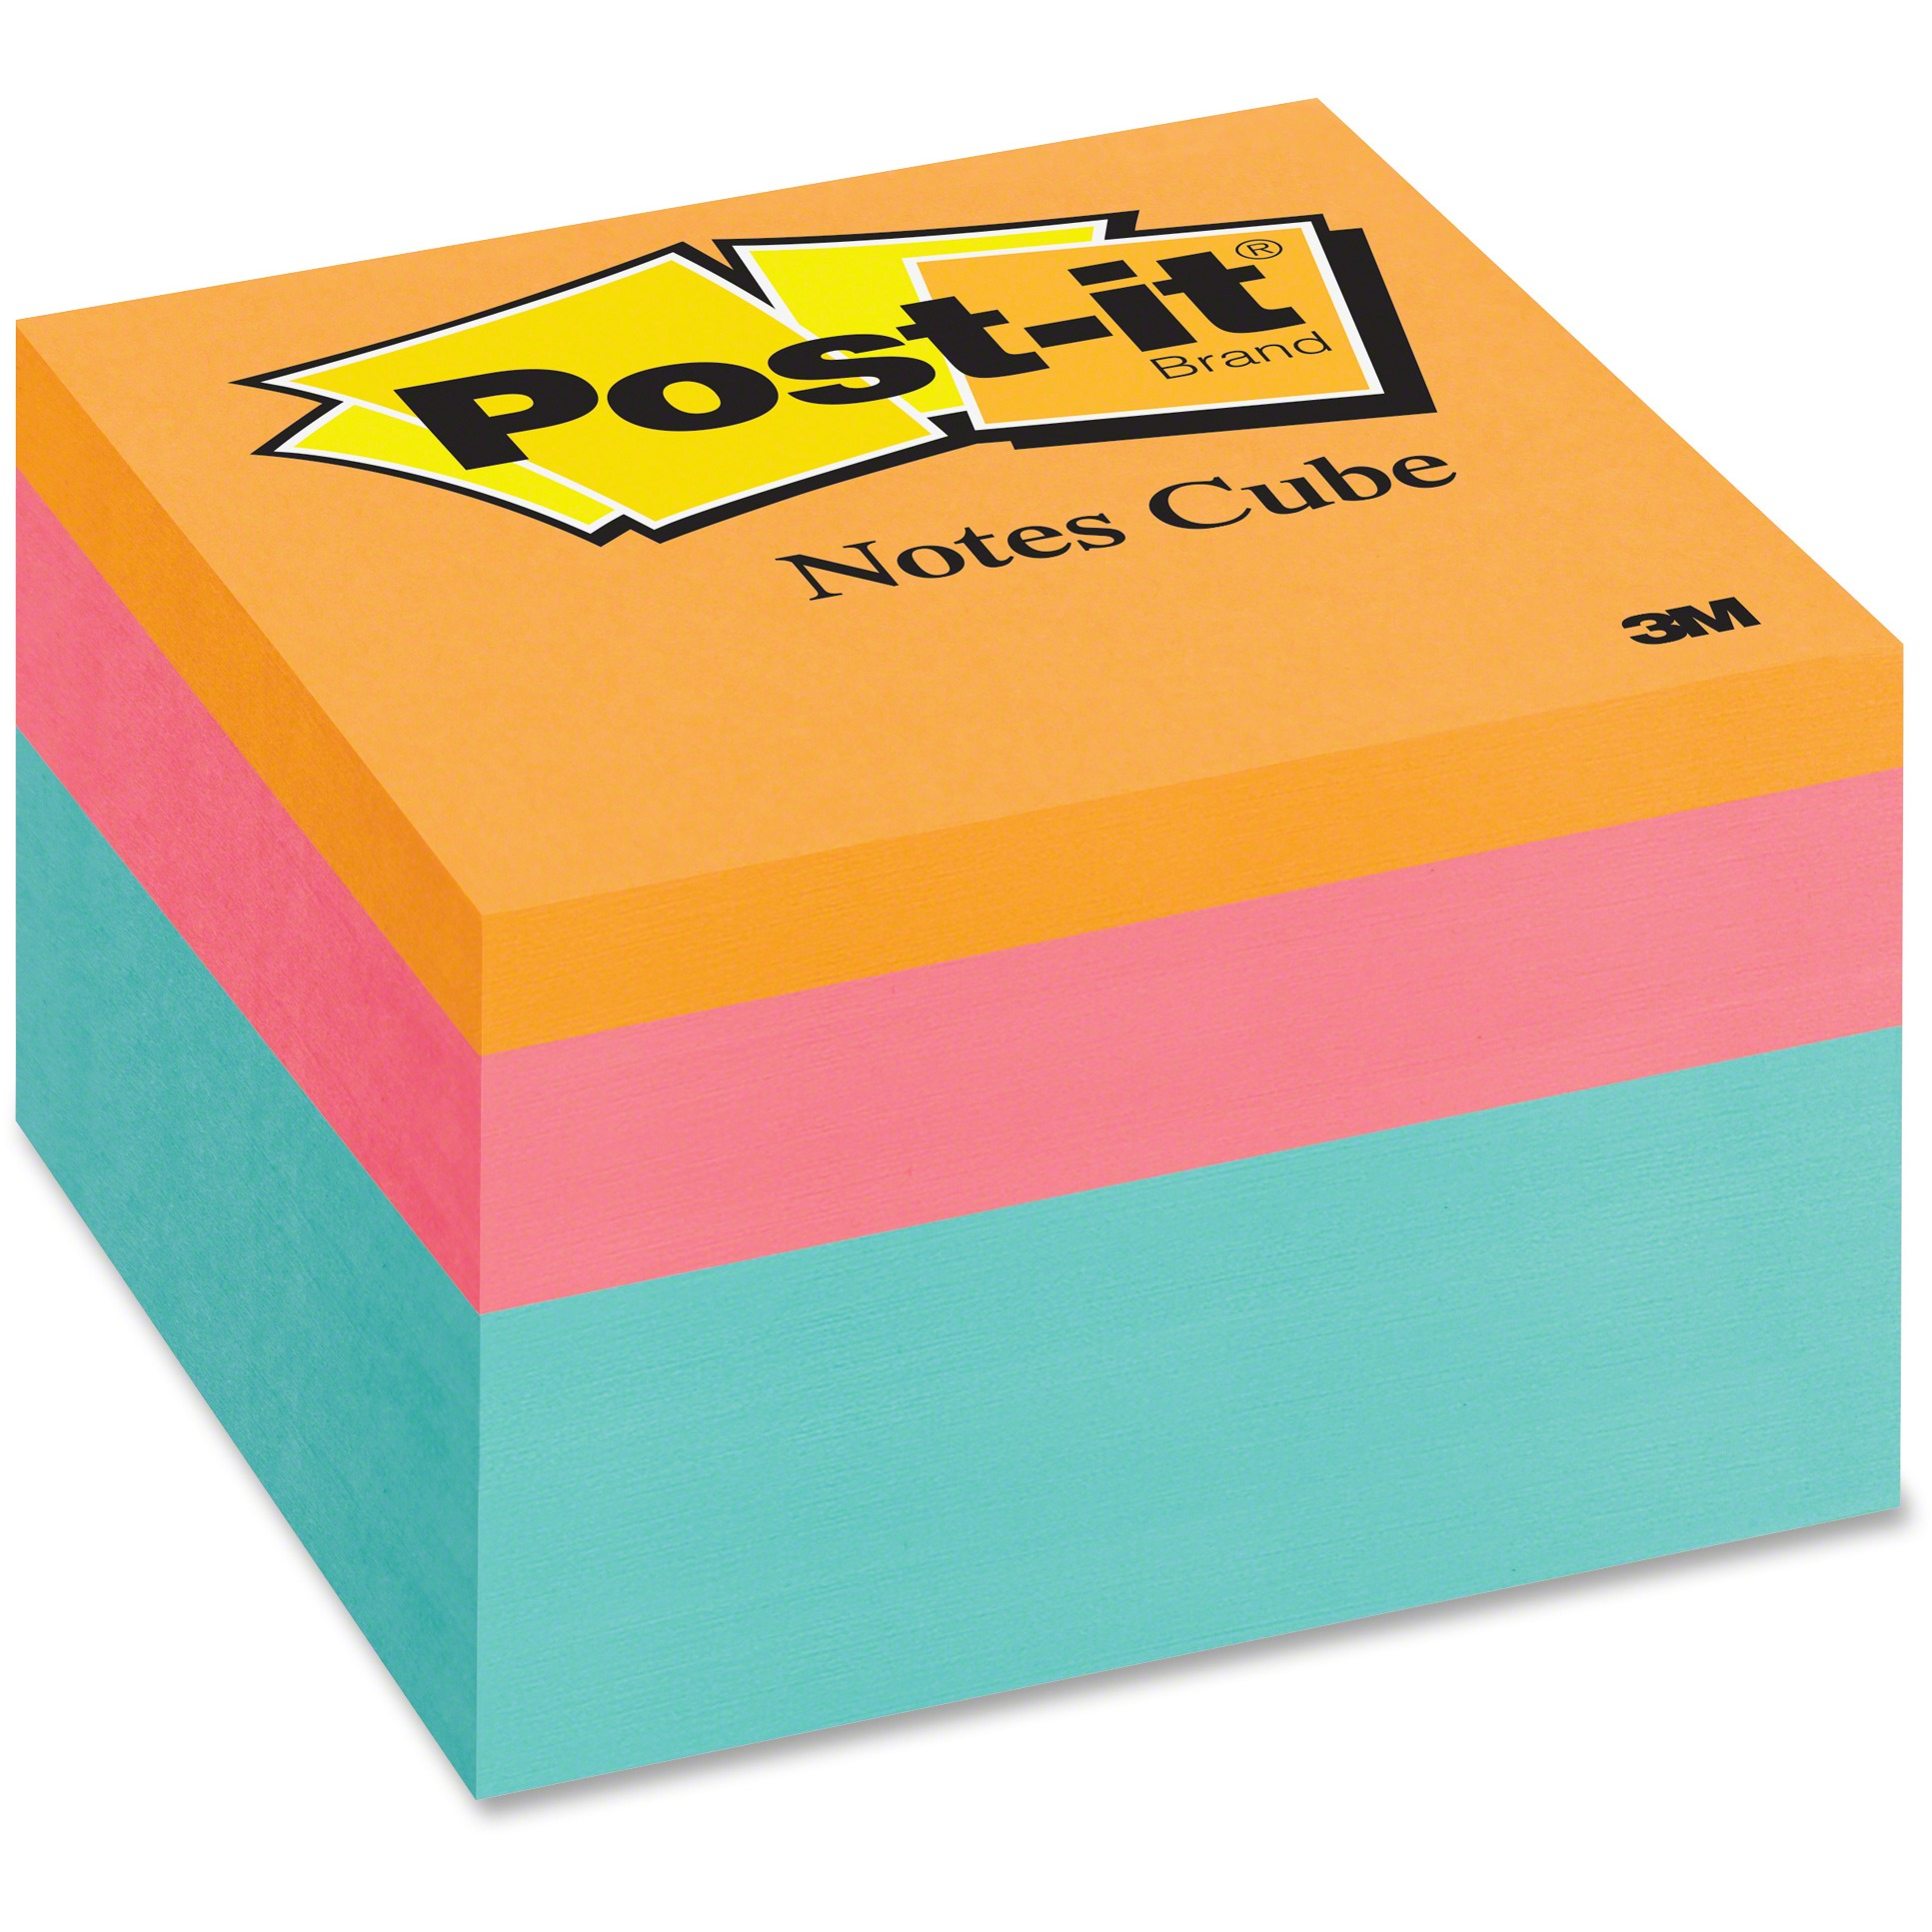 Post-it Sticky Notes Cube, Aqua Wave Collection